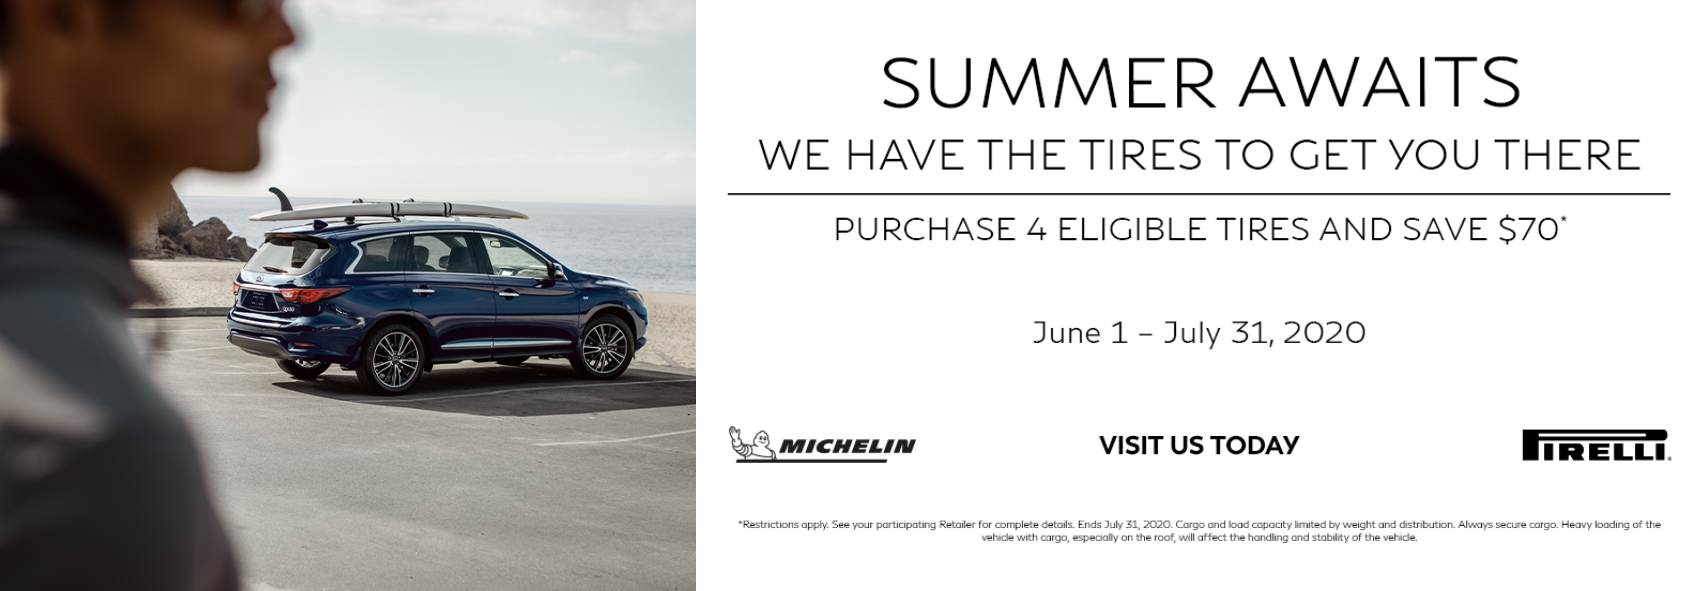 Purchase 4 eligible tires and save $70. Click to learn more.